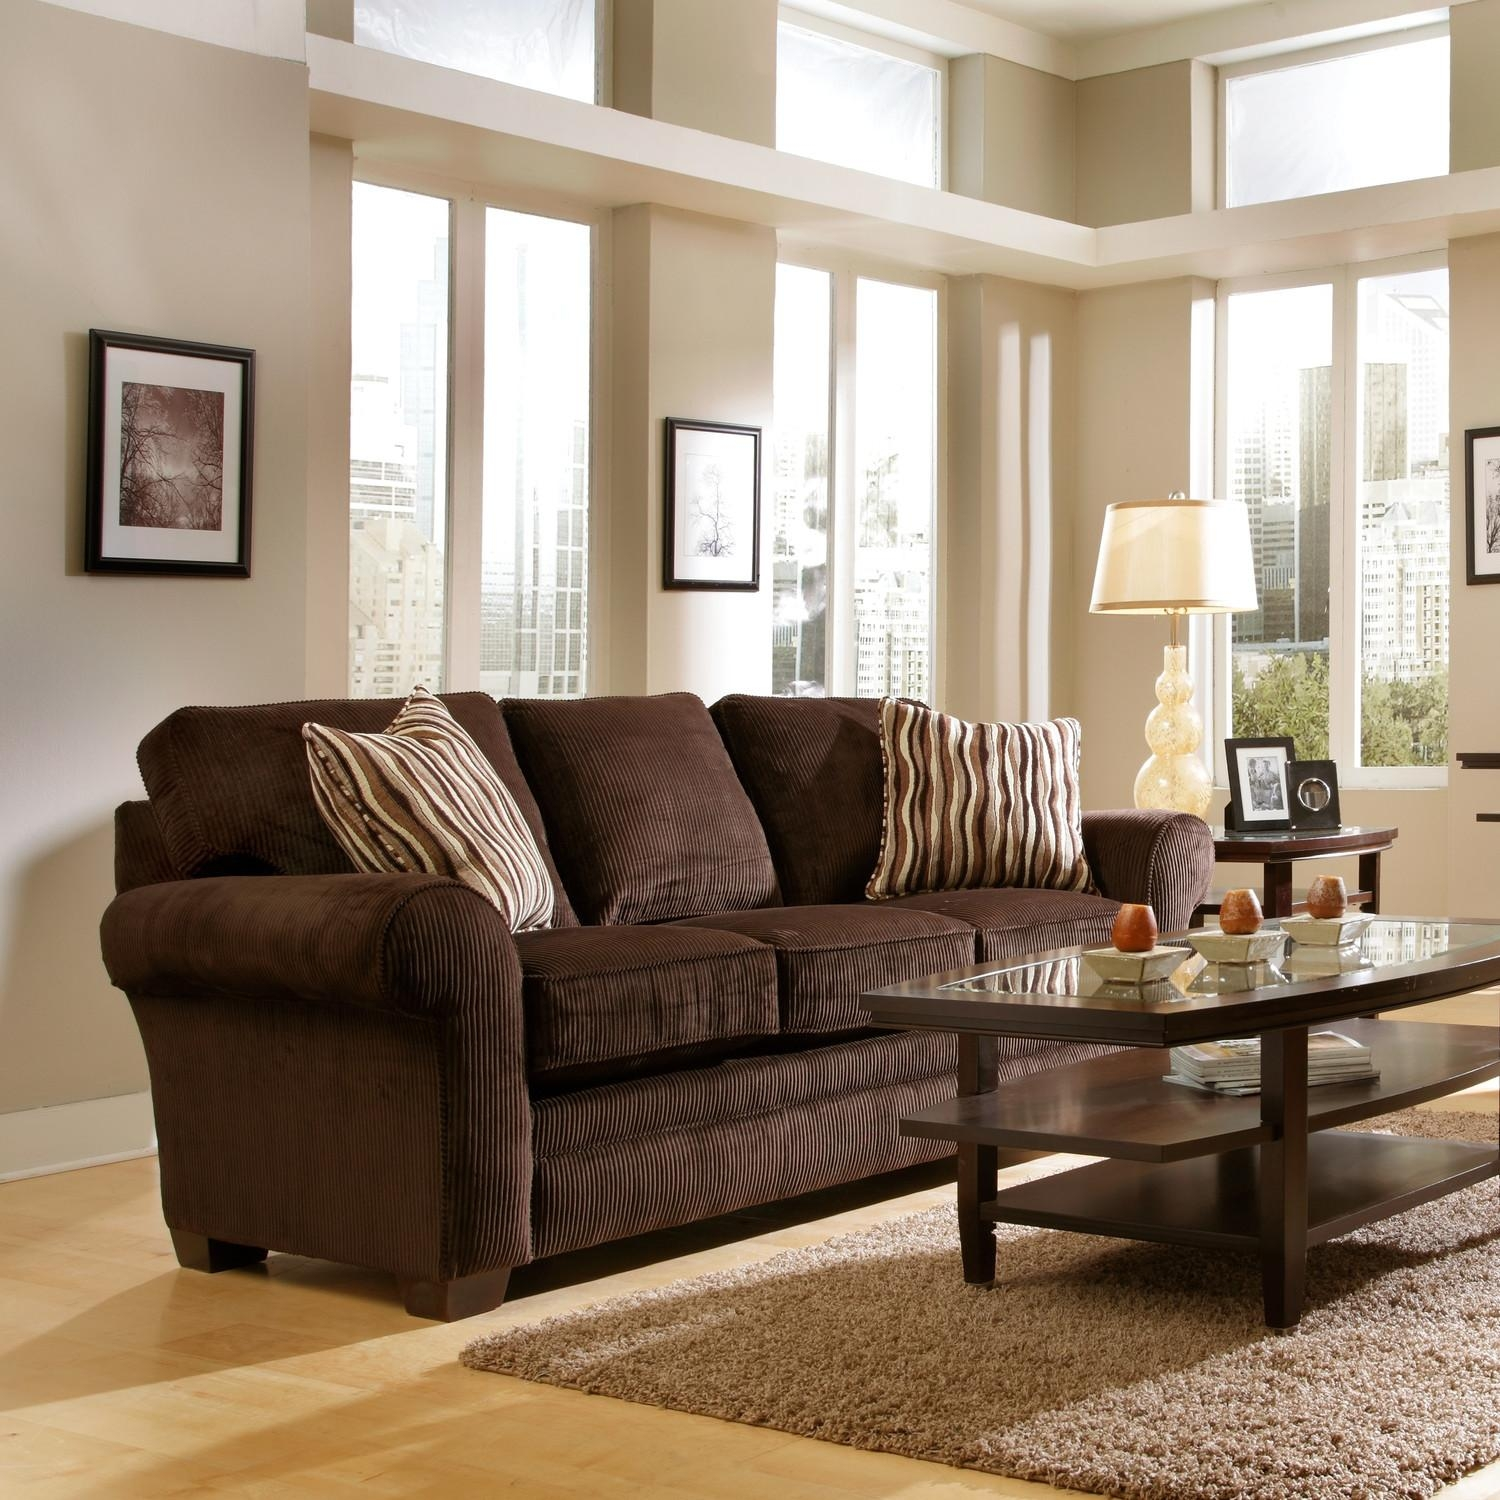 Interesting 90+ Chocolate Brown Sofa Living Room Ideas Decorating In Brown Sofa Decors (Image 14 of 20)